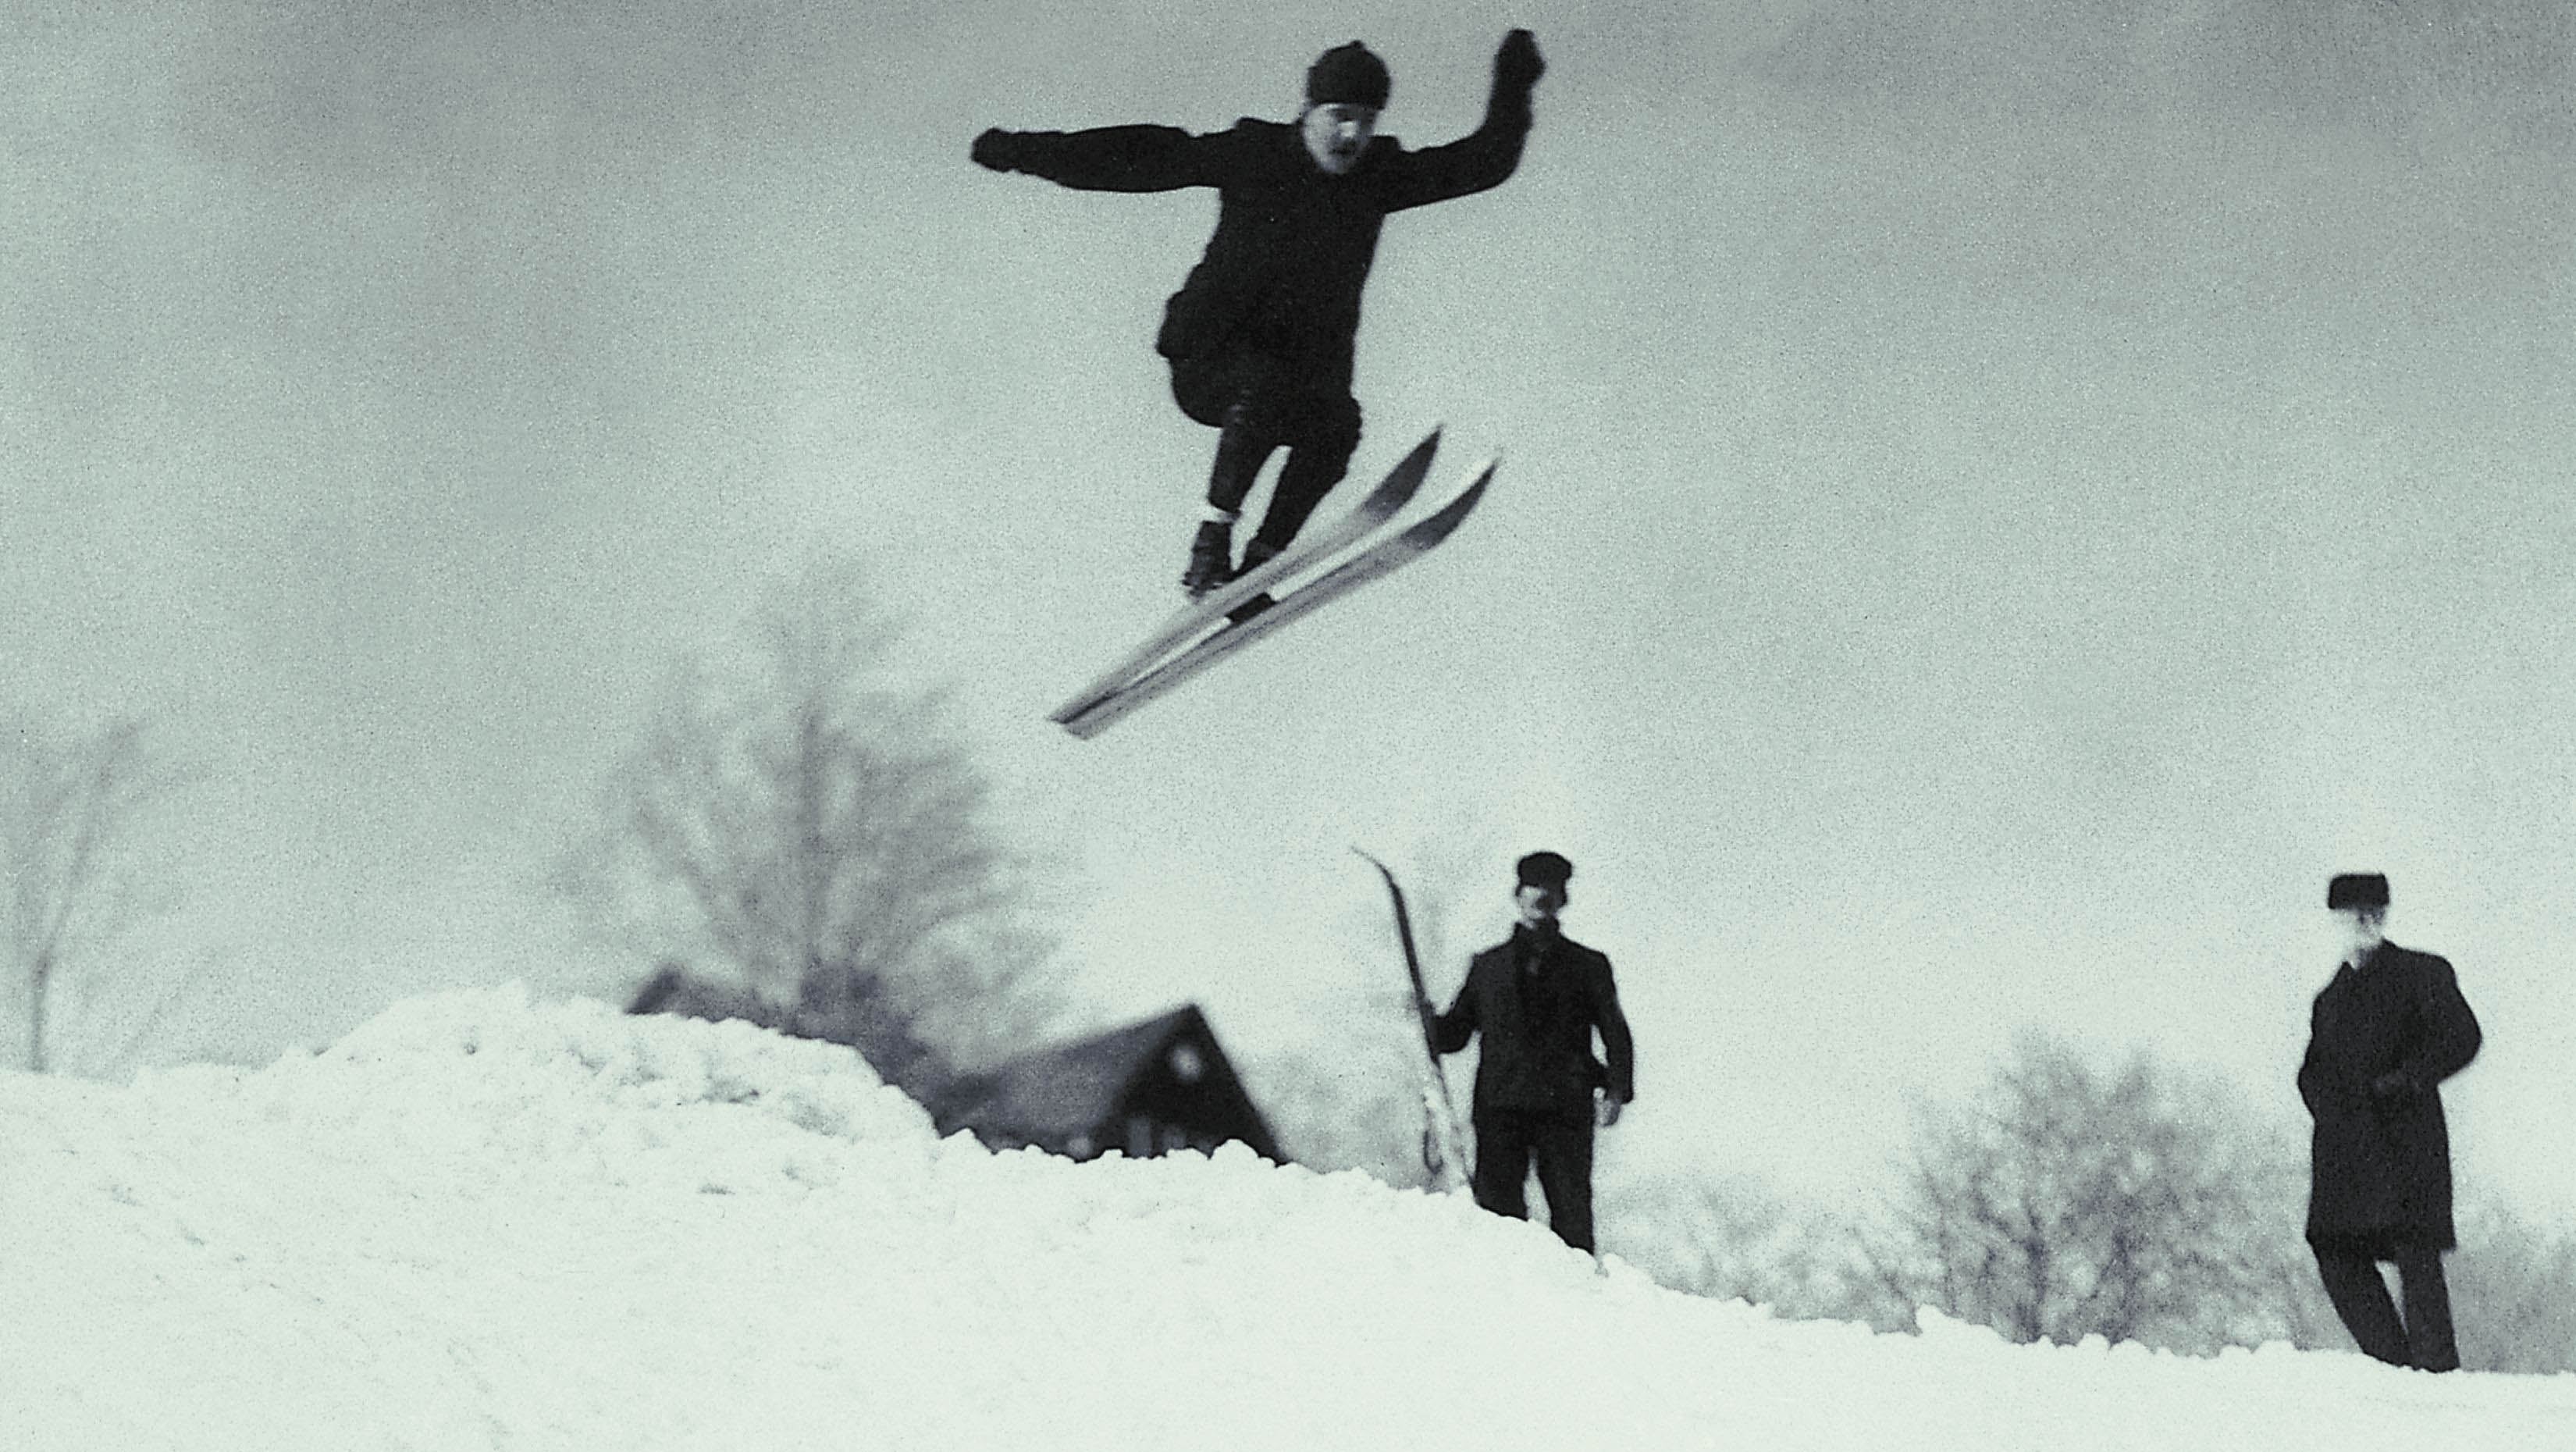 Historic shot of Norwegian skier going off a jump